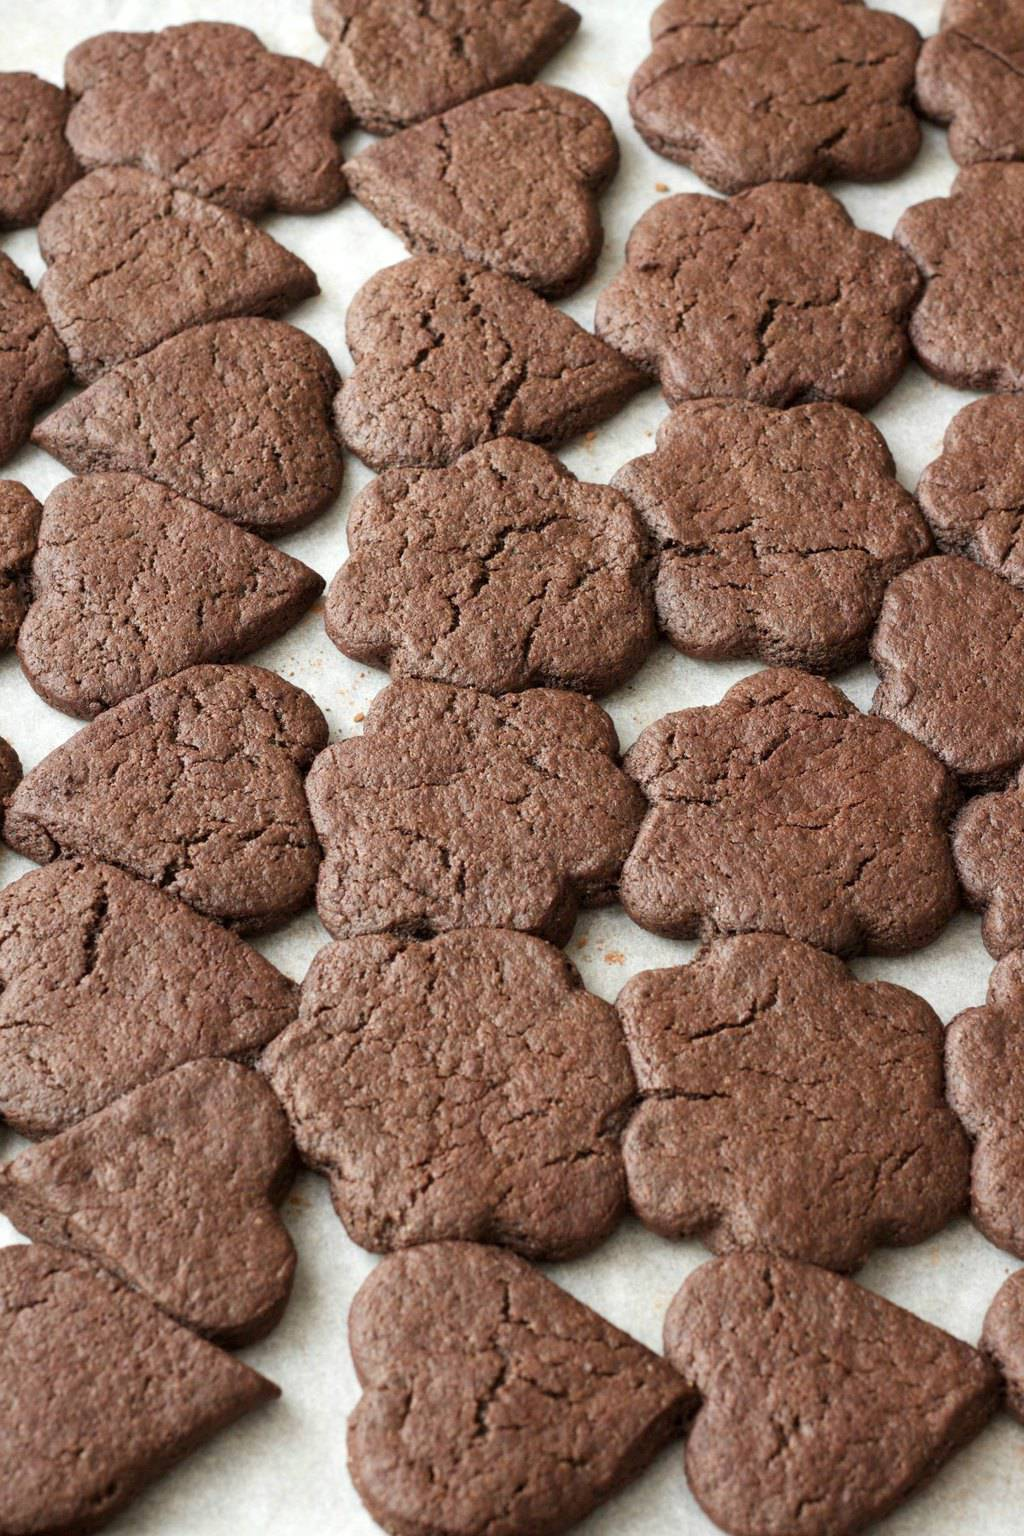 Vegan Chocolate Sugar Cookies. Super easy and fun to make! #vegan #lovingitvegan #sugarcookies #dessert